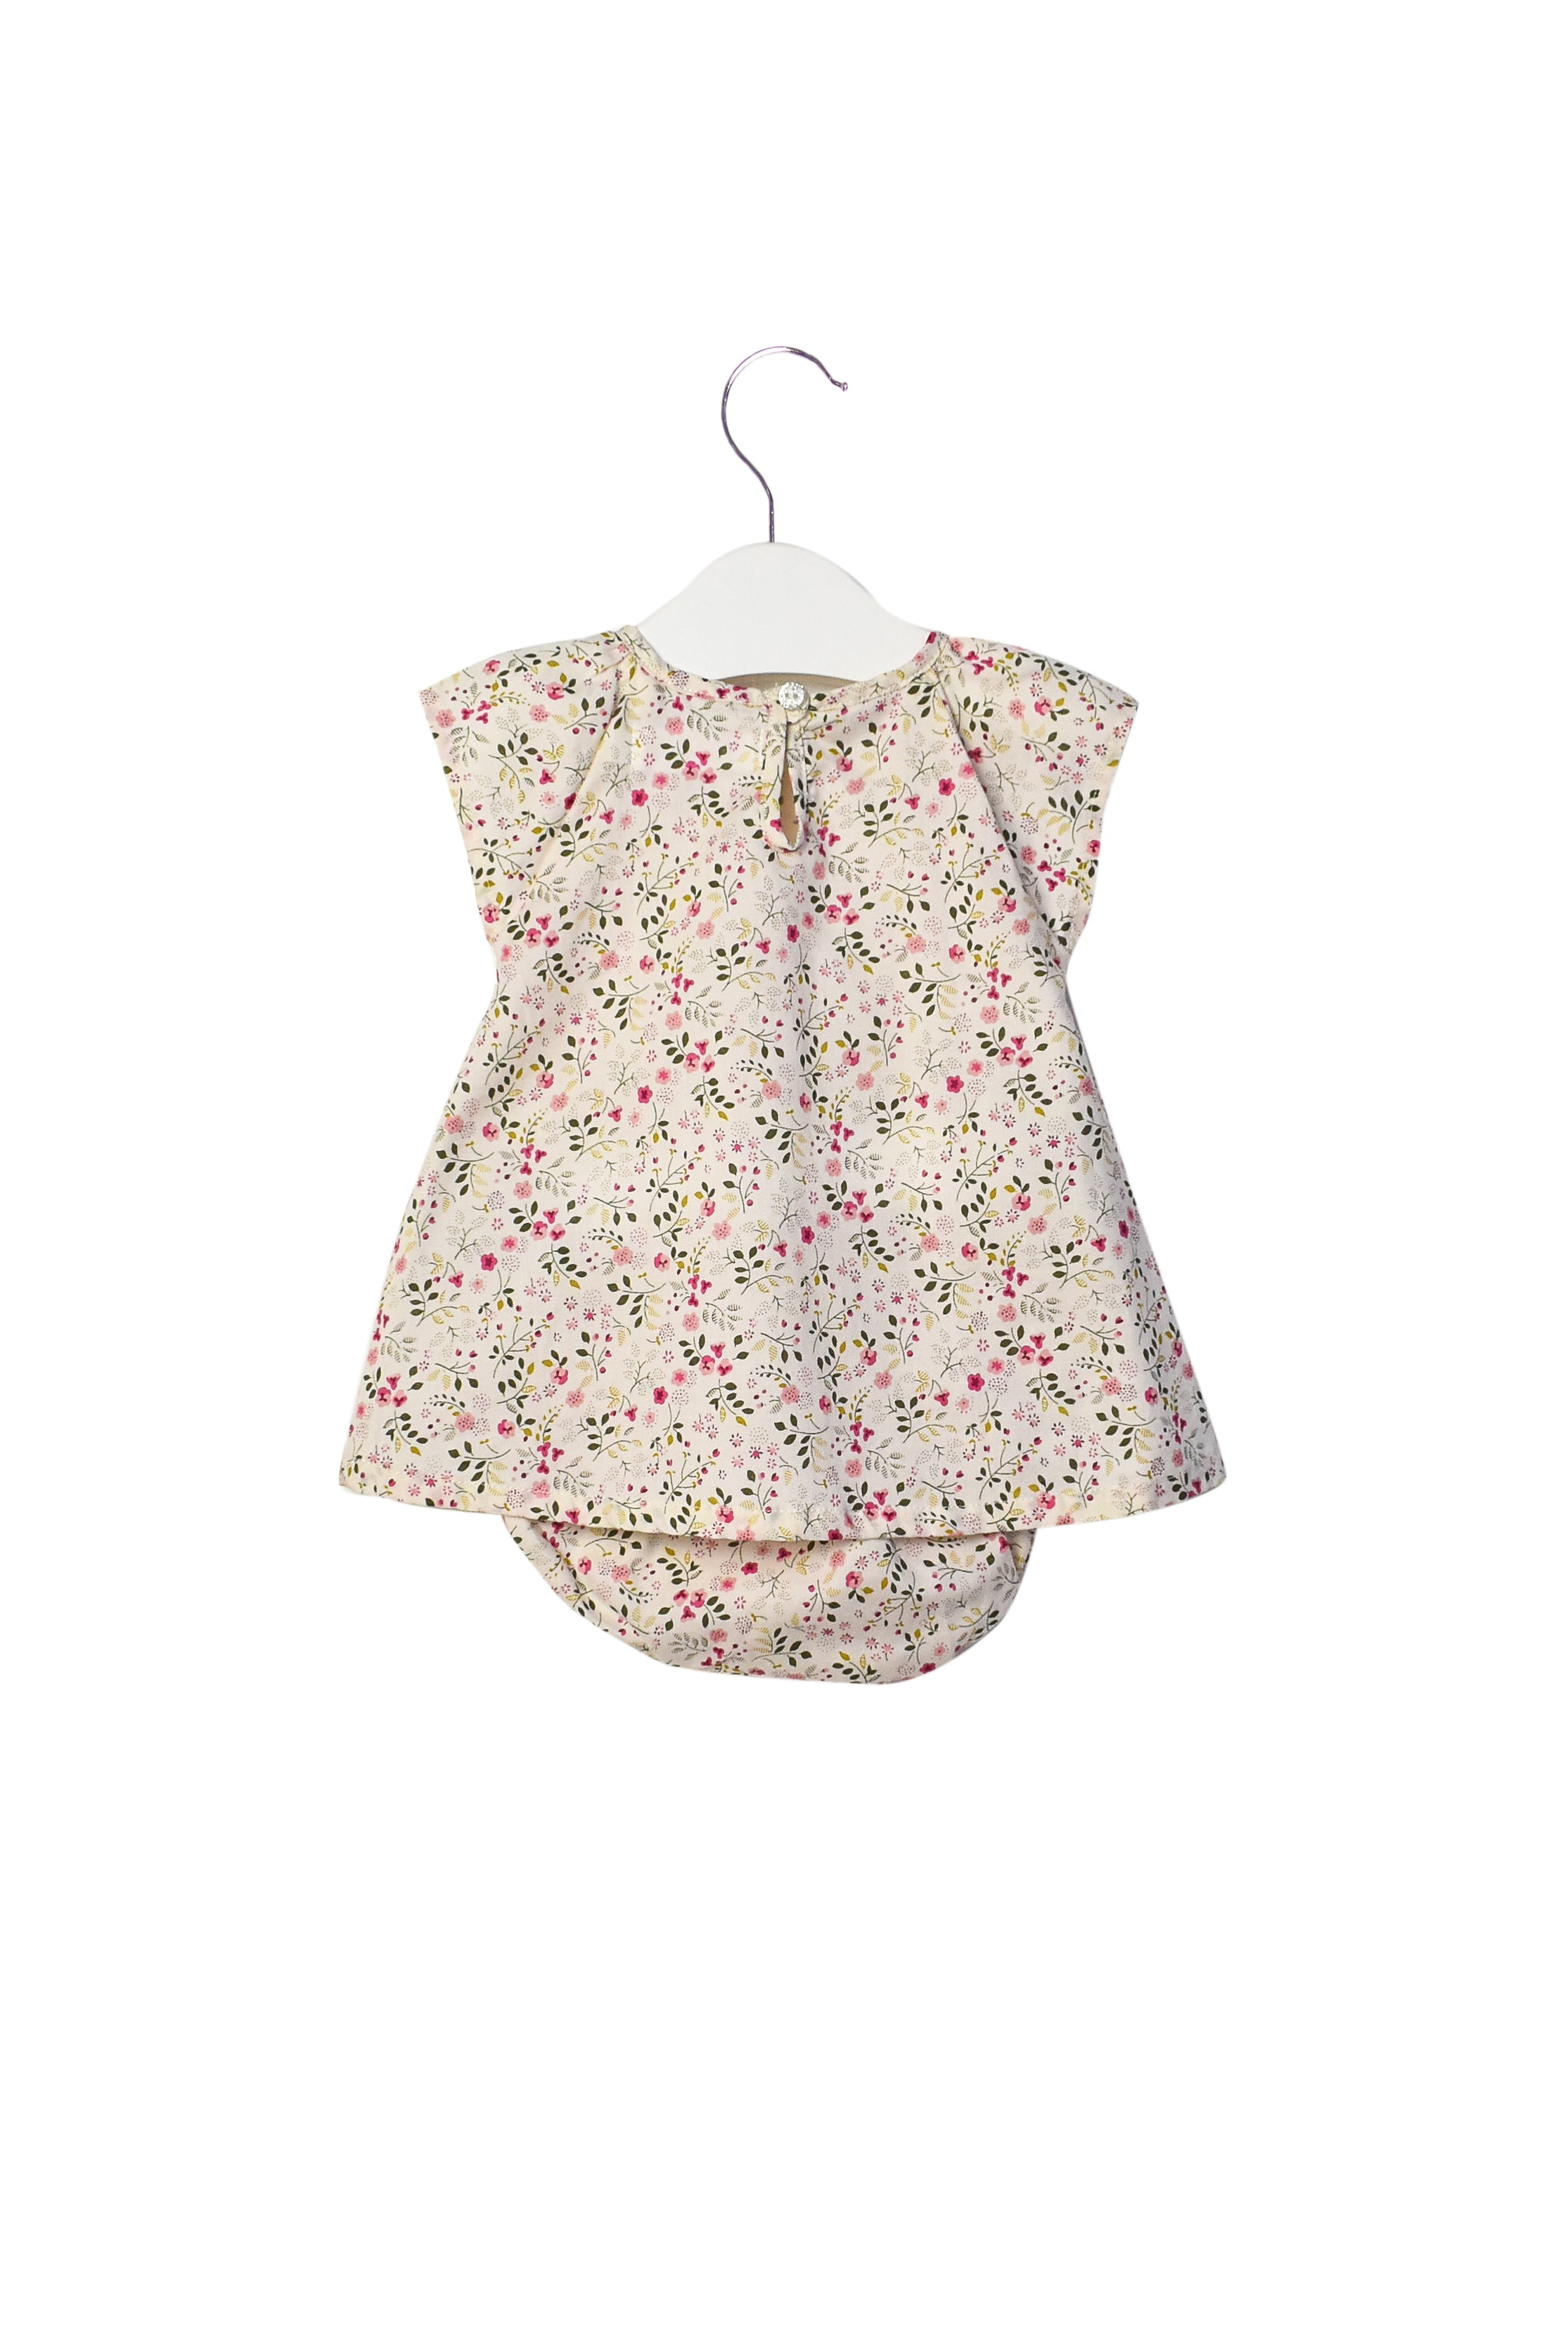 10006812 Little Mercerie Baby~Dress and Bloomer 3M at Retykle